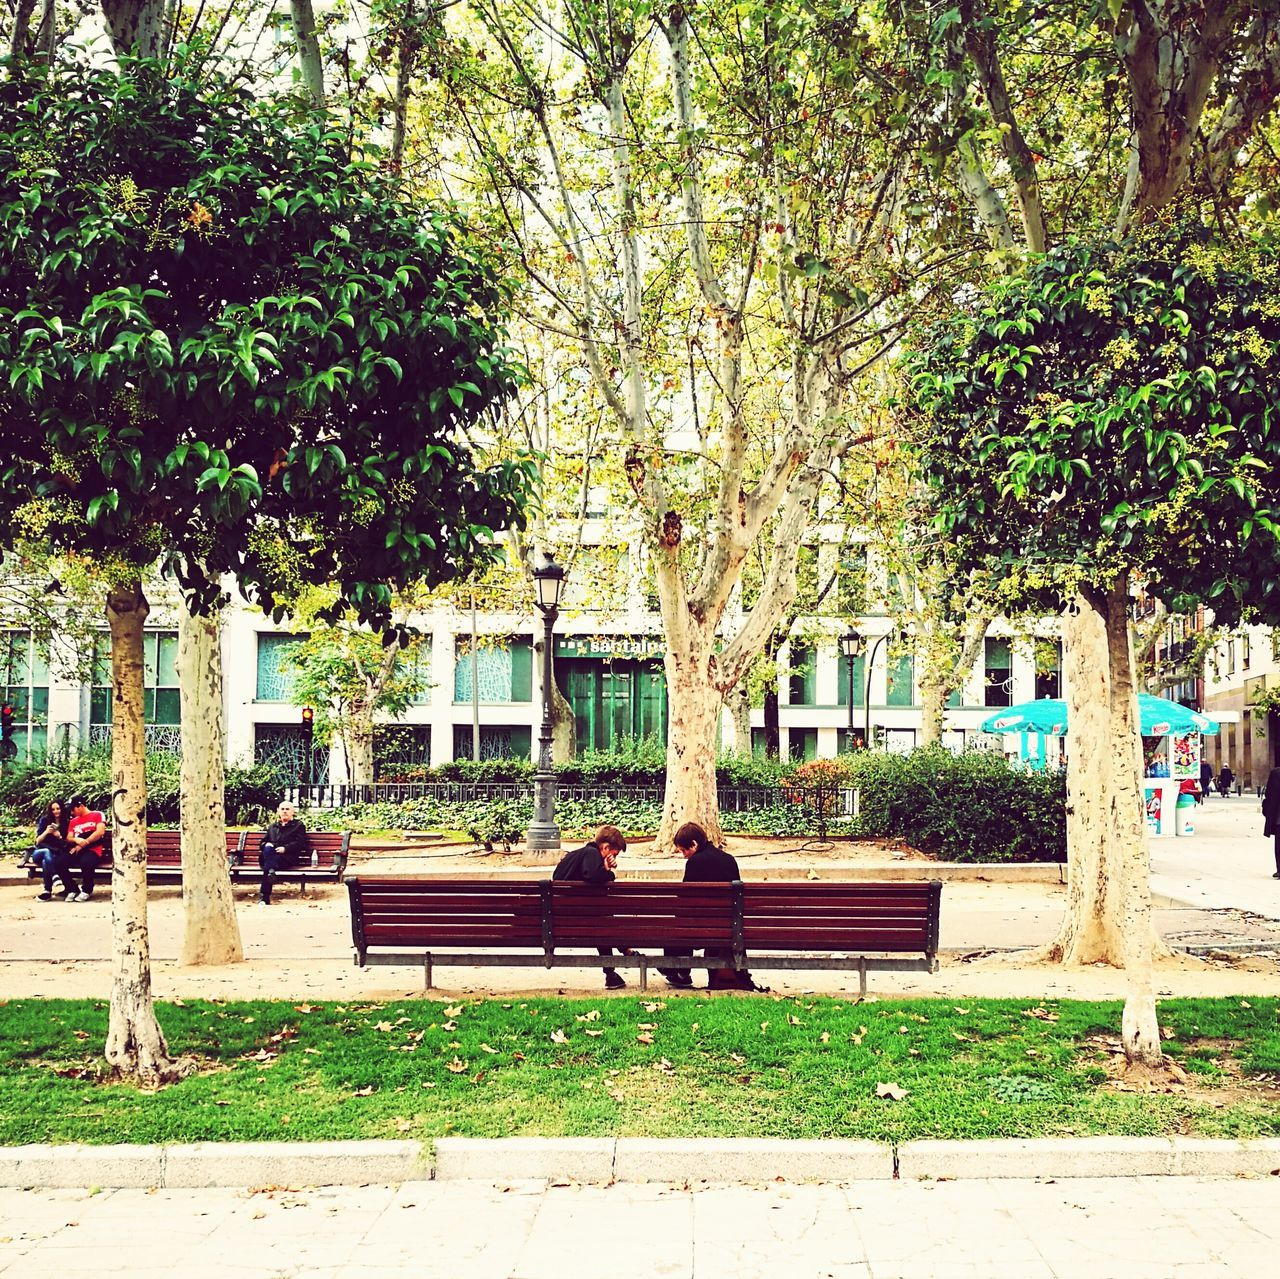 Chess Bench Park Bench Tree Park Outdoors City Life Green Color City Plant Day First Eyeem Photo